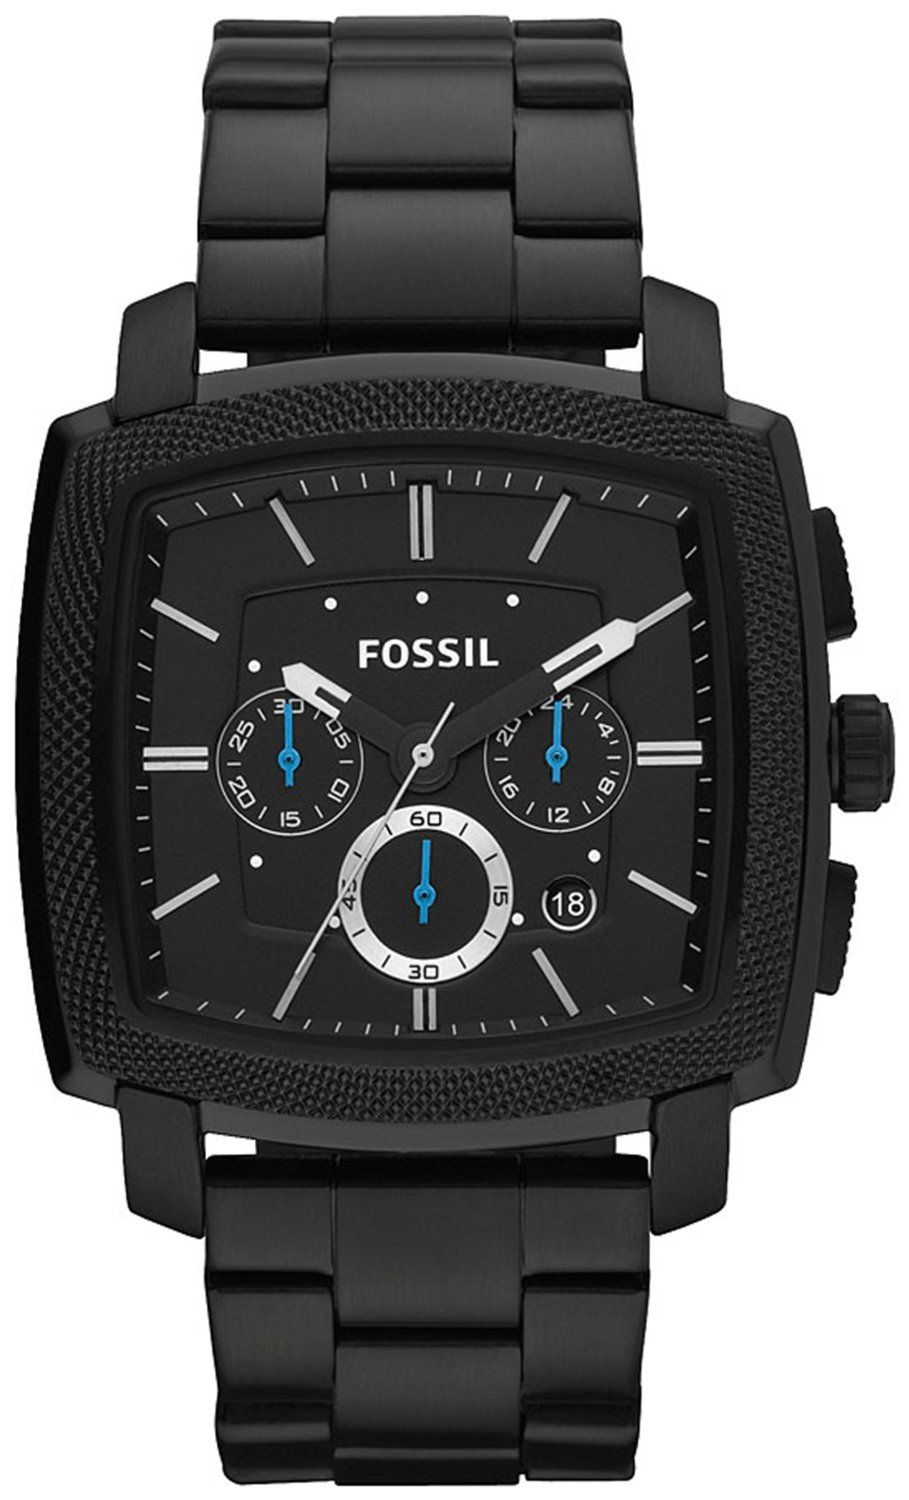 04fe2acba17 Fossil Men s FS4718 Machine Black Stainless Steel Watch    99.99   Fossil  Watch Men